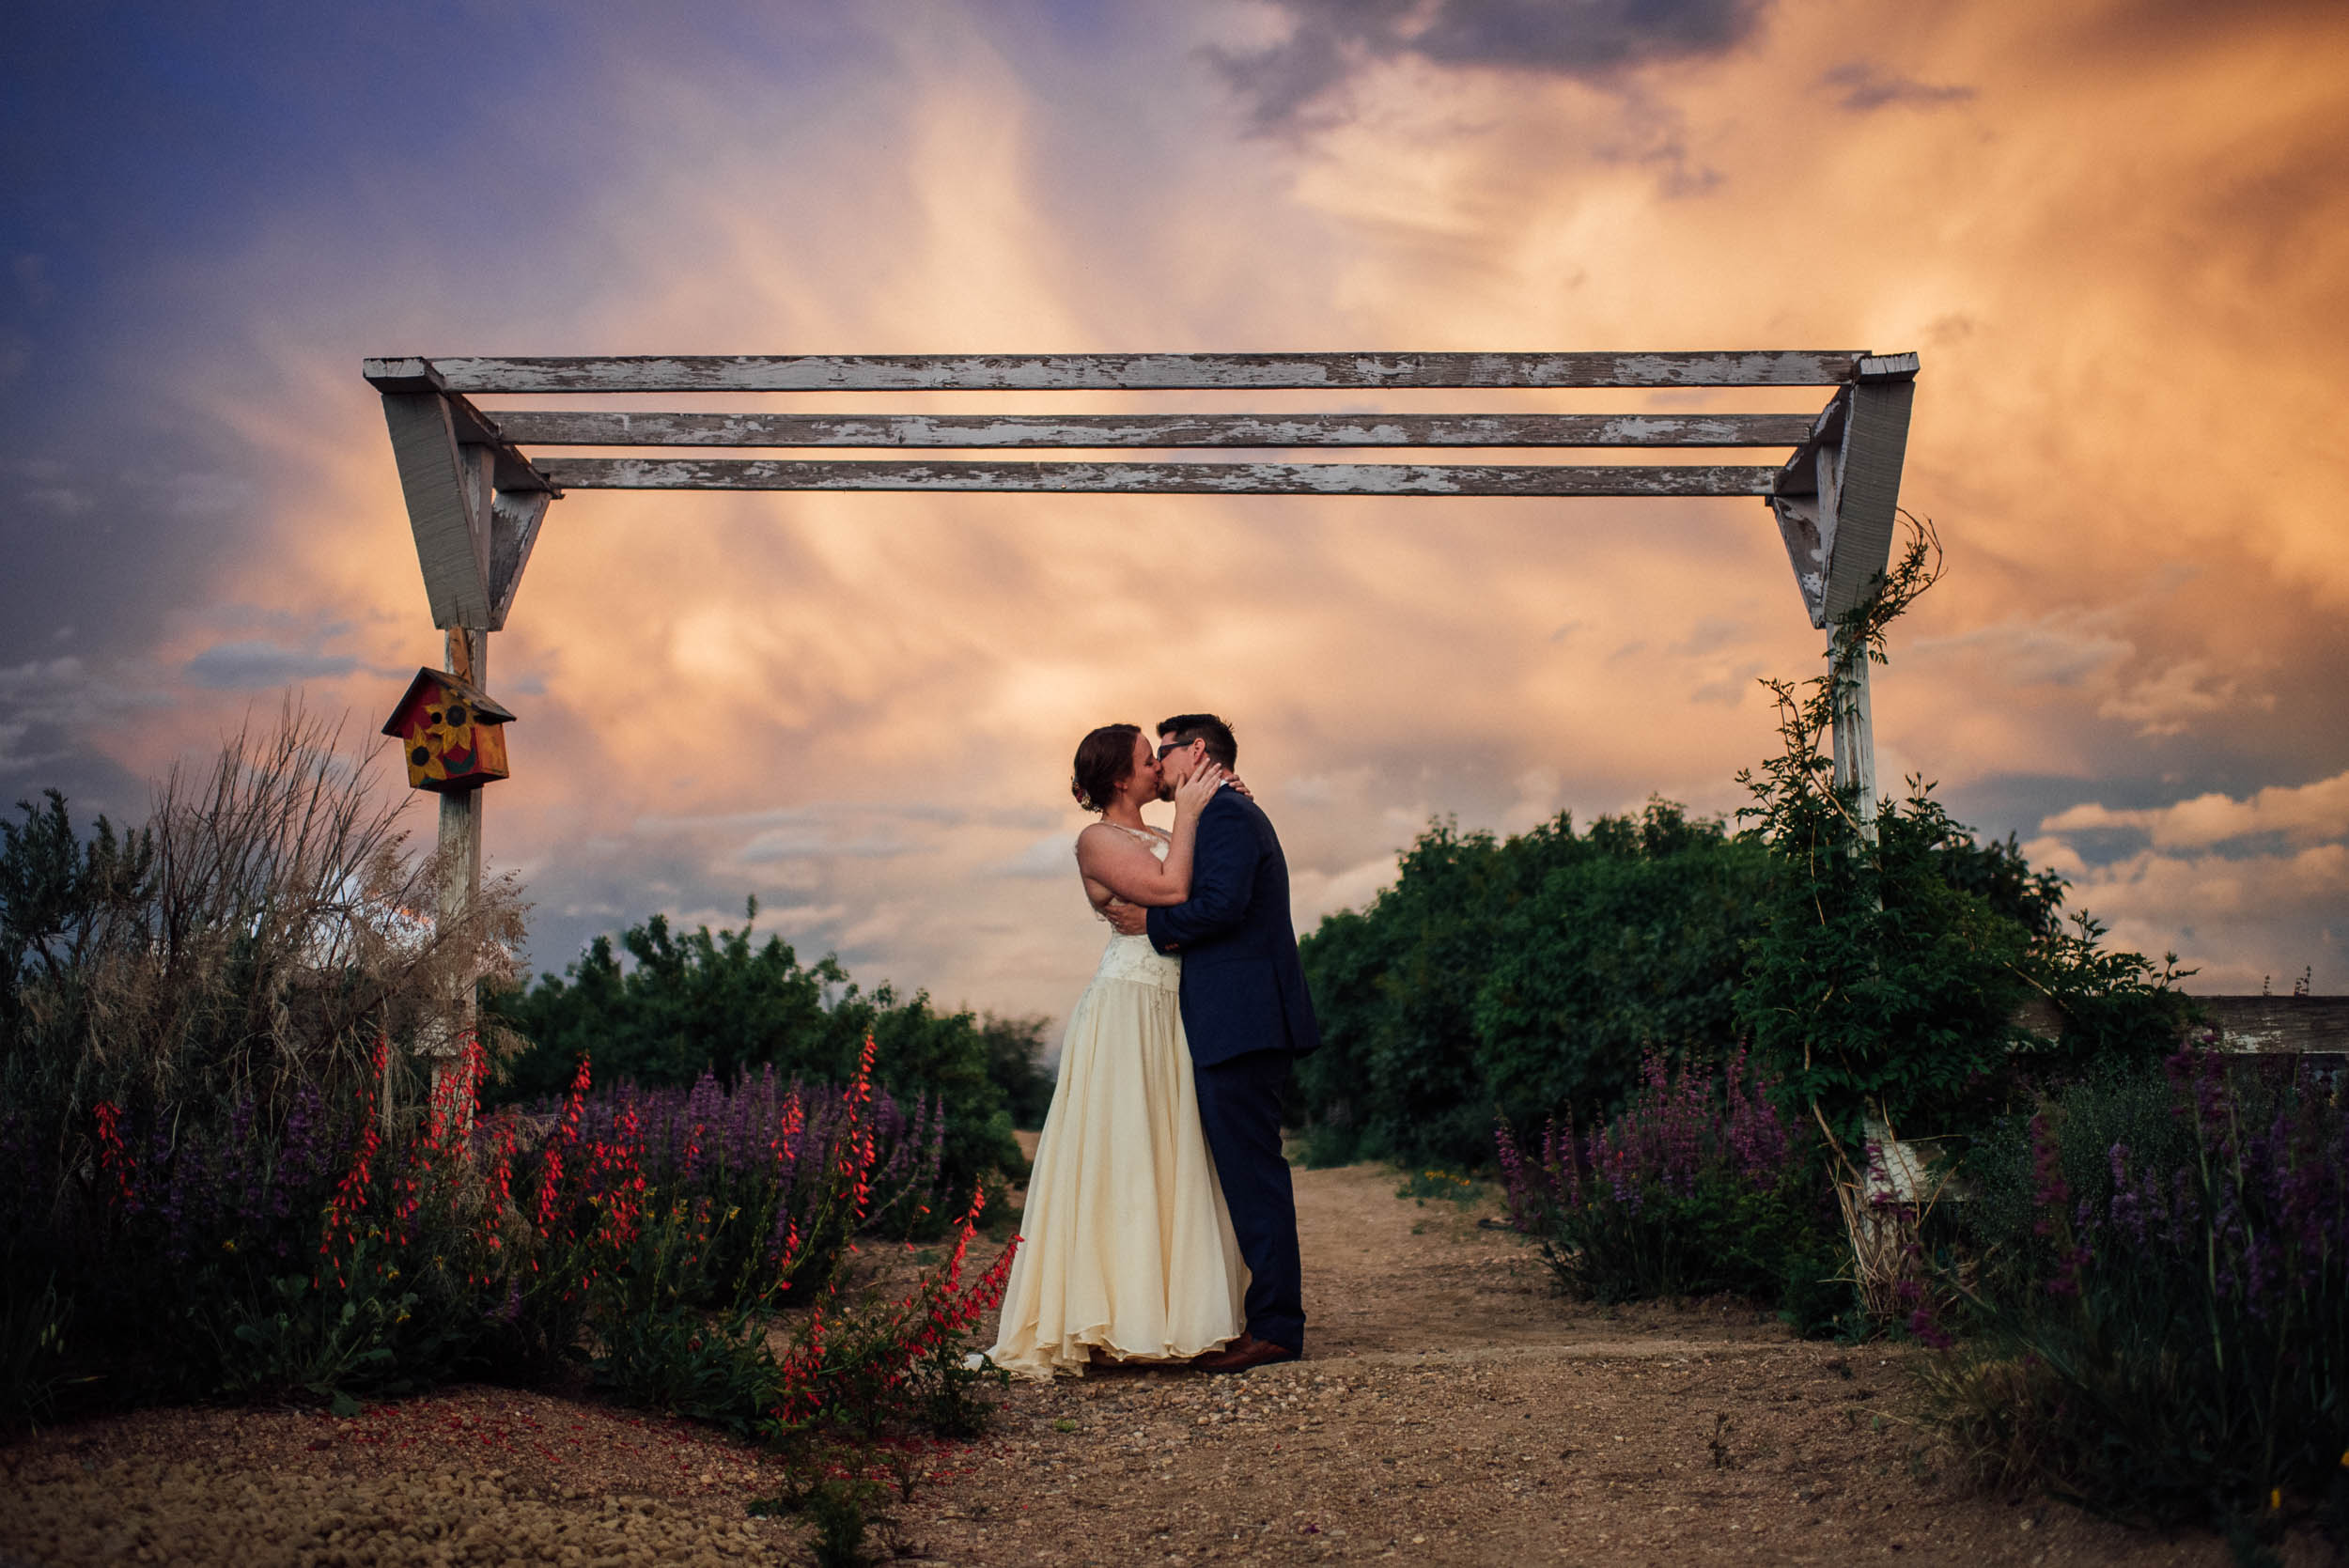 Colorado-Backyard-Wedding-Photographer-96.jpg